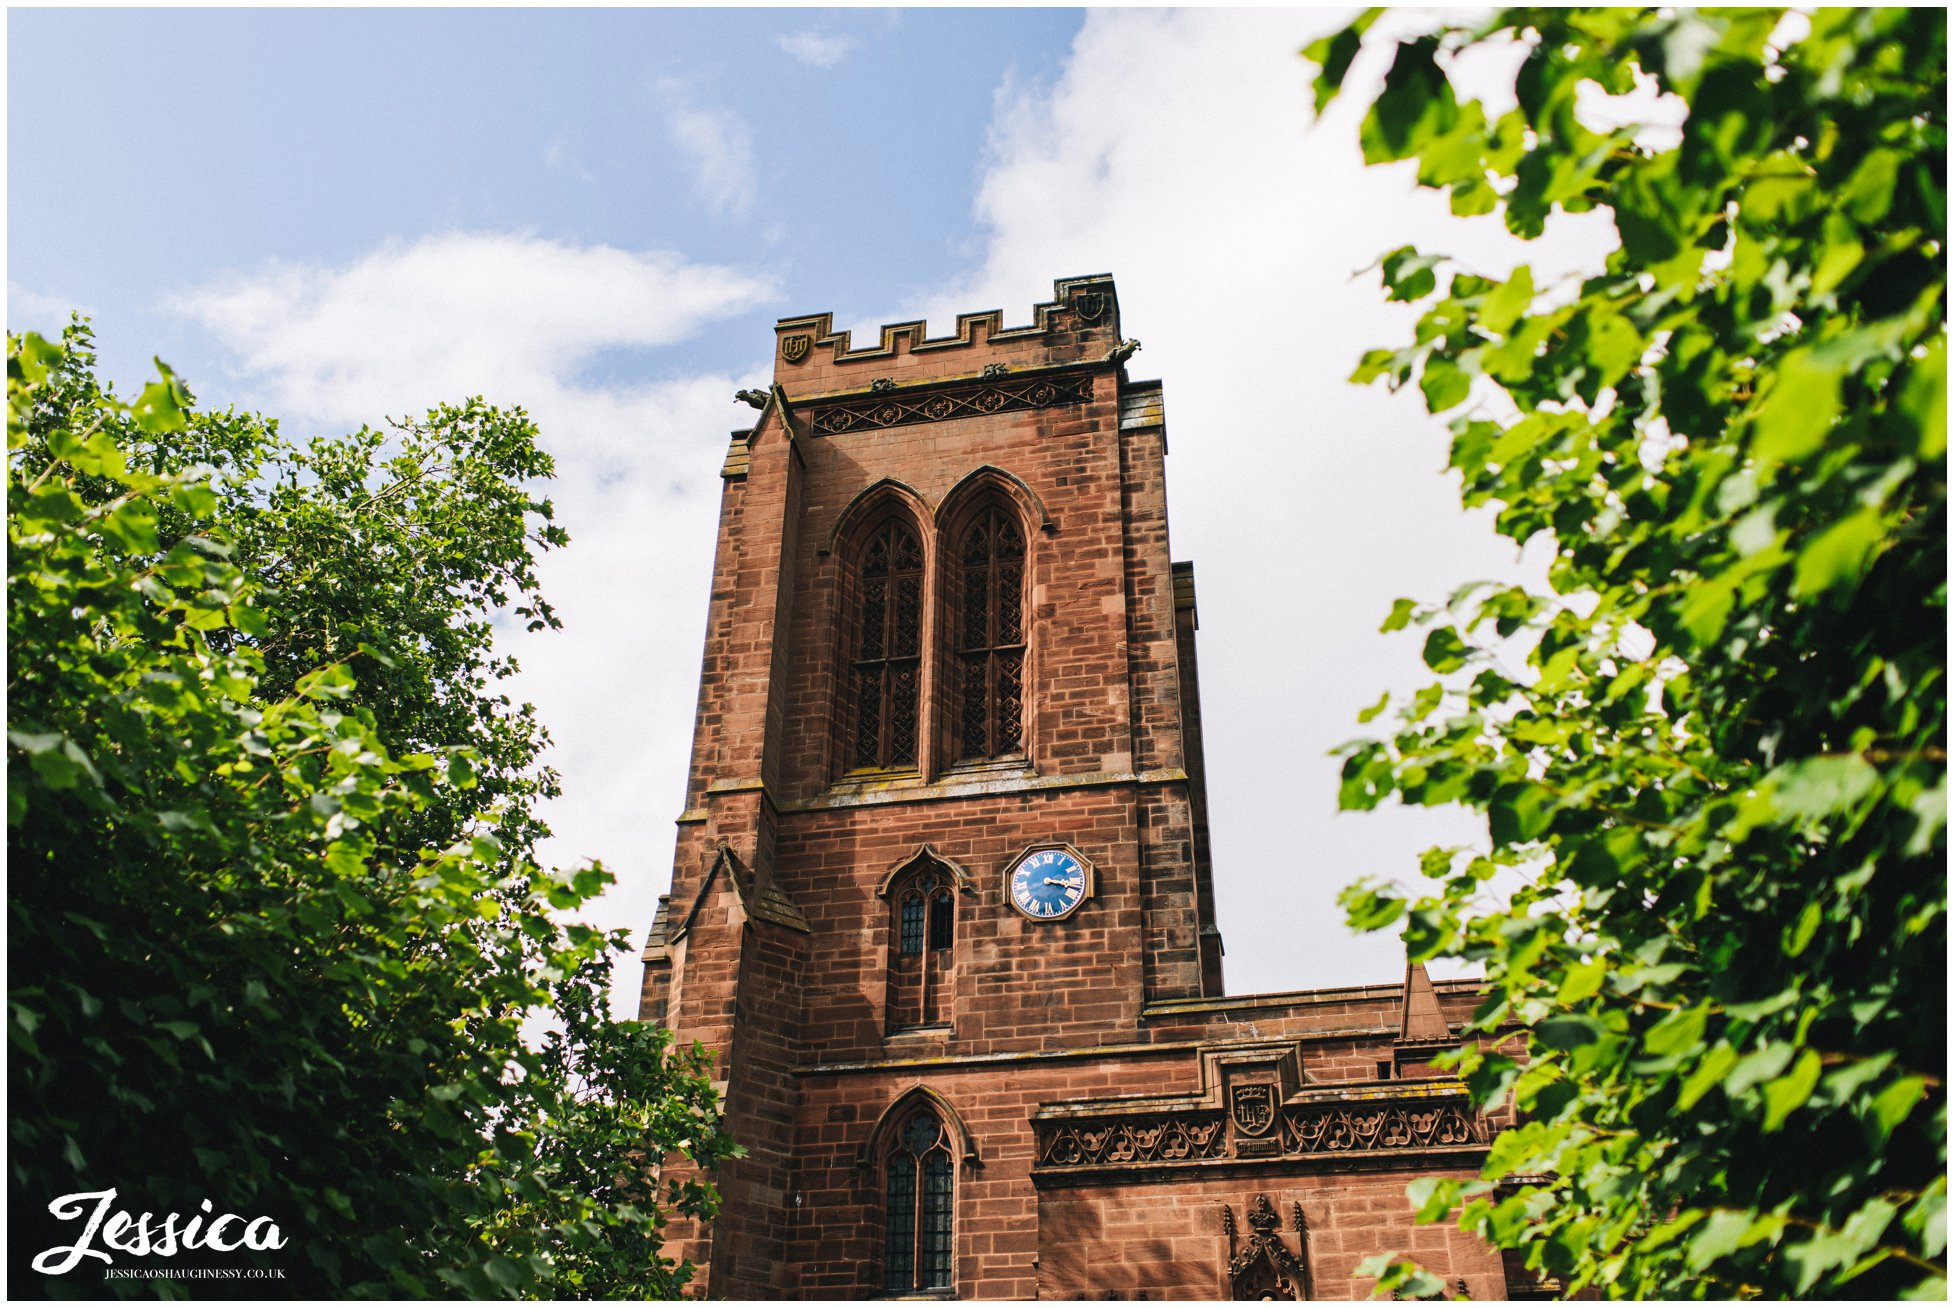 eccleston church in chester